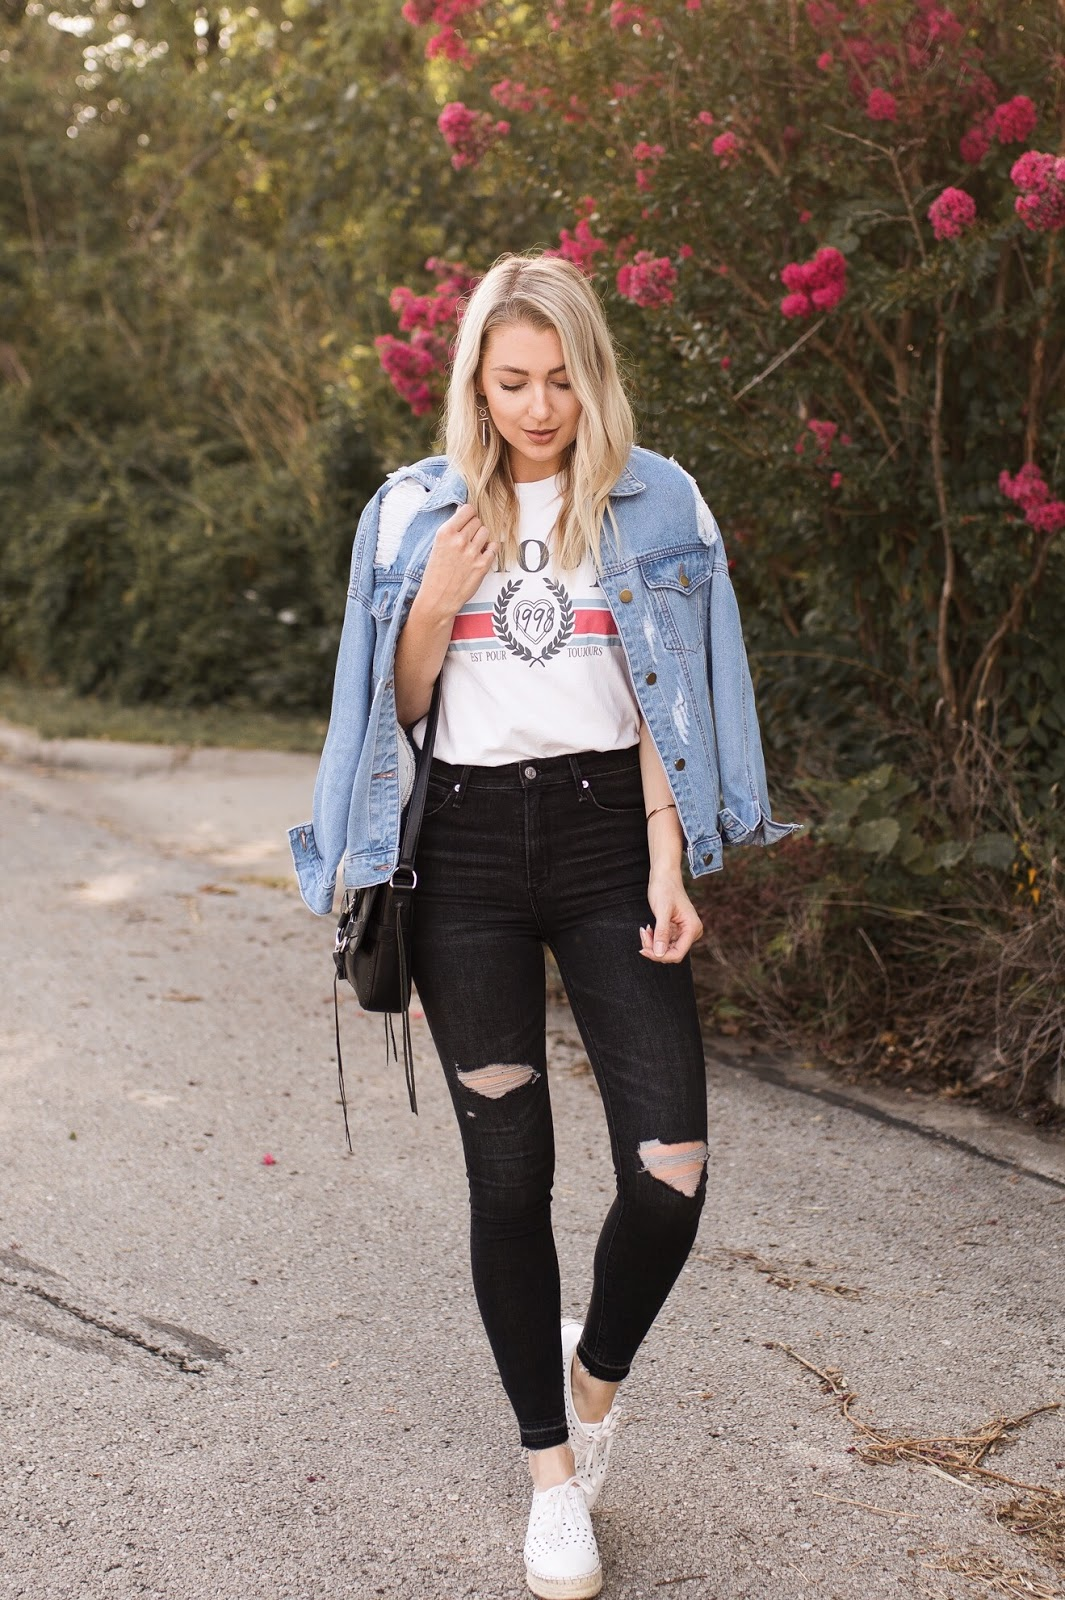 cute fall outfit: jean jacket, graphic tee, distressed jeans